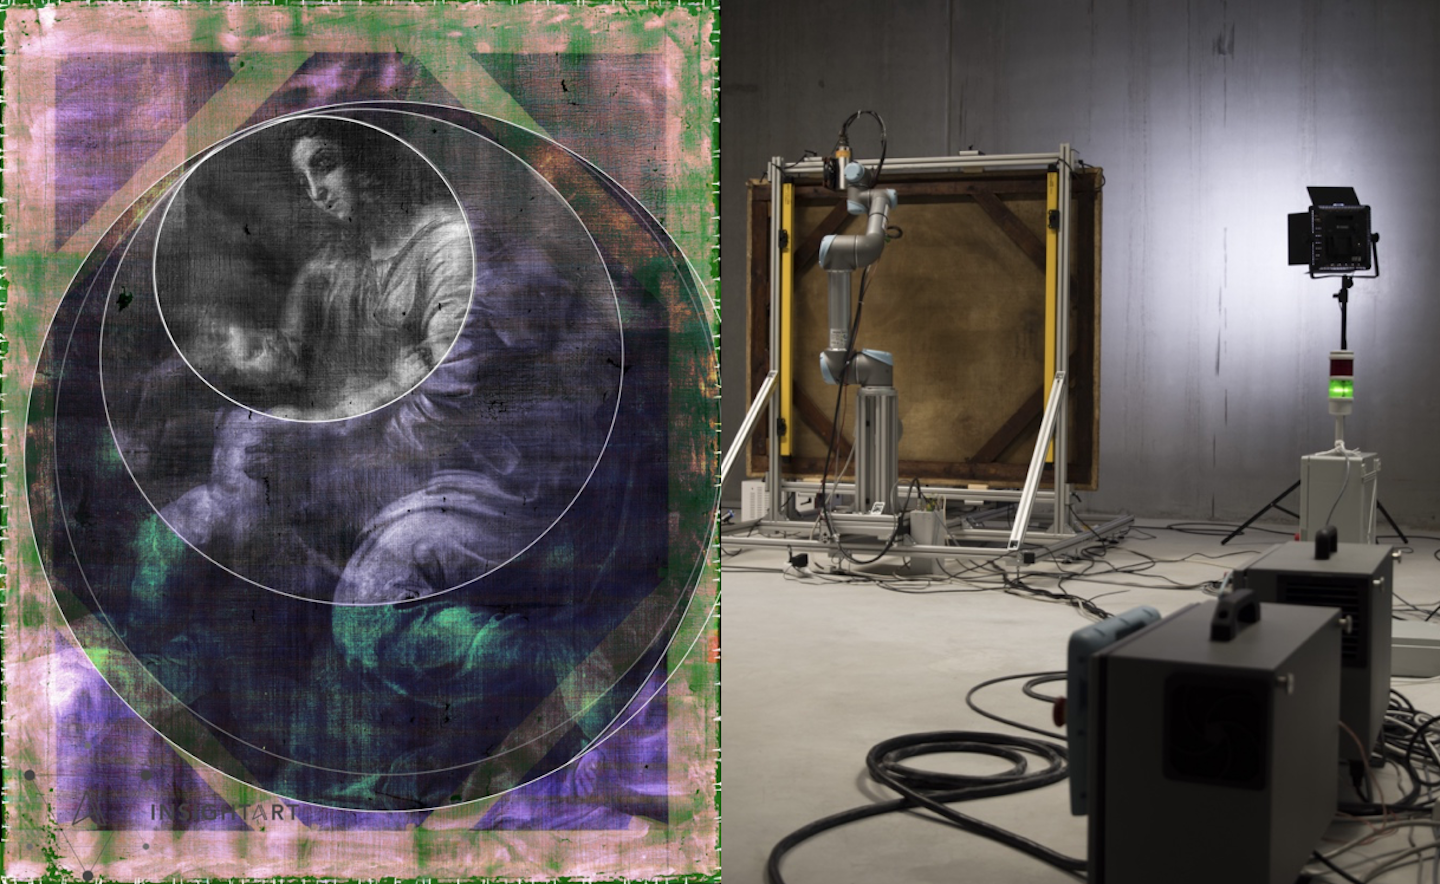 CERN technology helps rediscover lost painting by Raphael